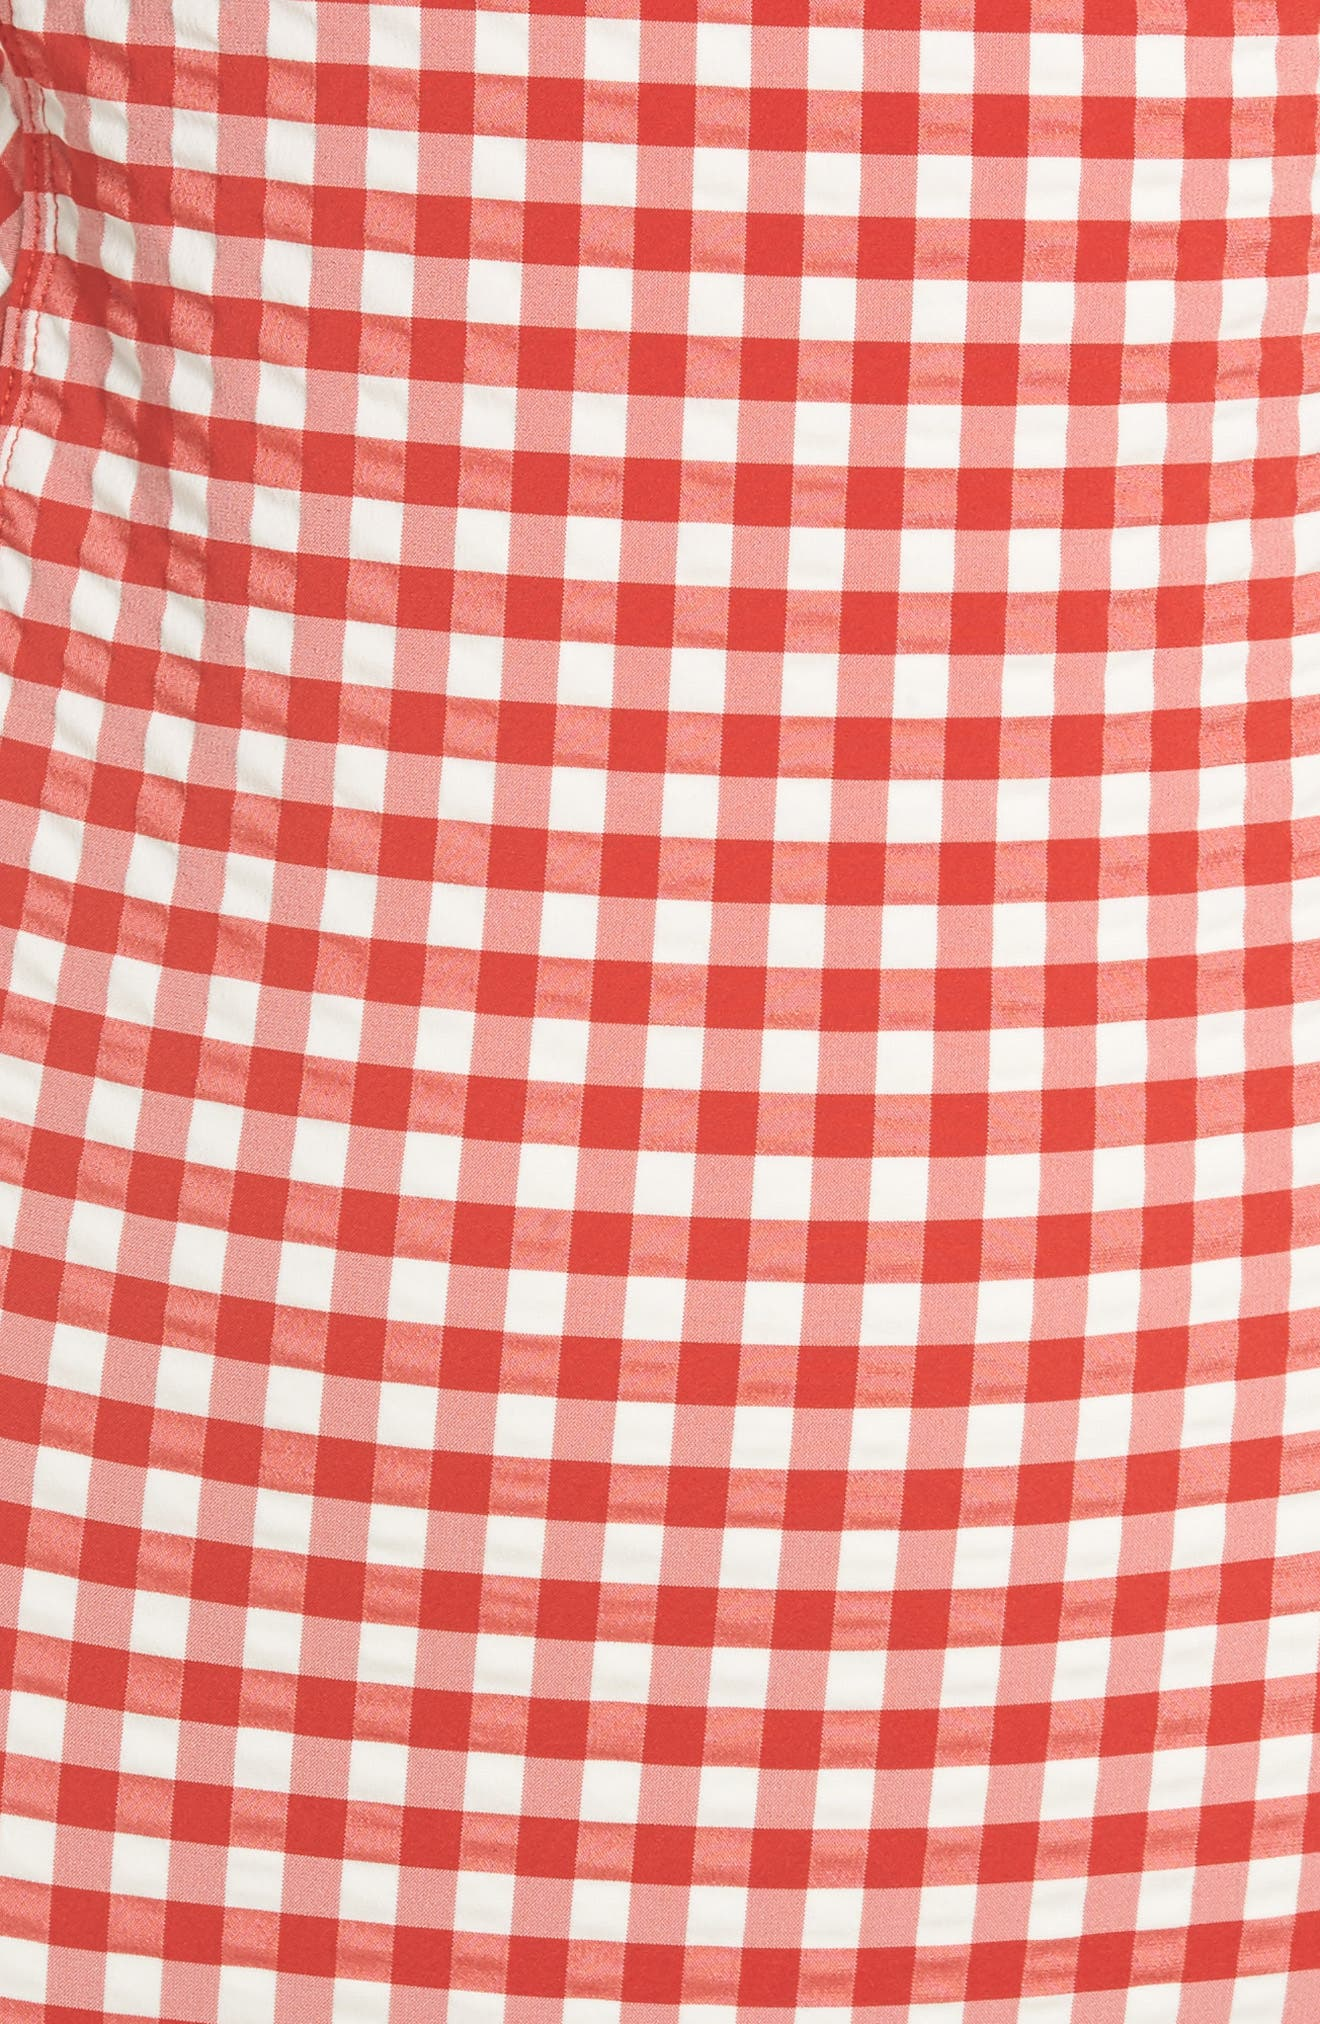 Gingham One-Piece Underwire Swimsuit,                             Alternate thumbnail 5, color,                             Red / White